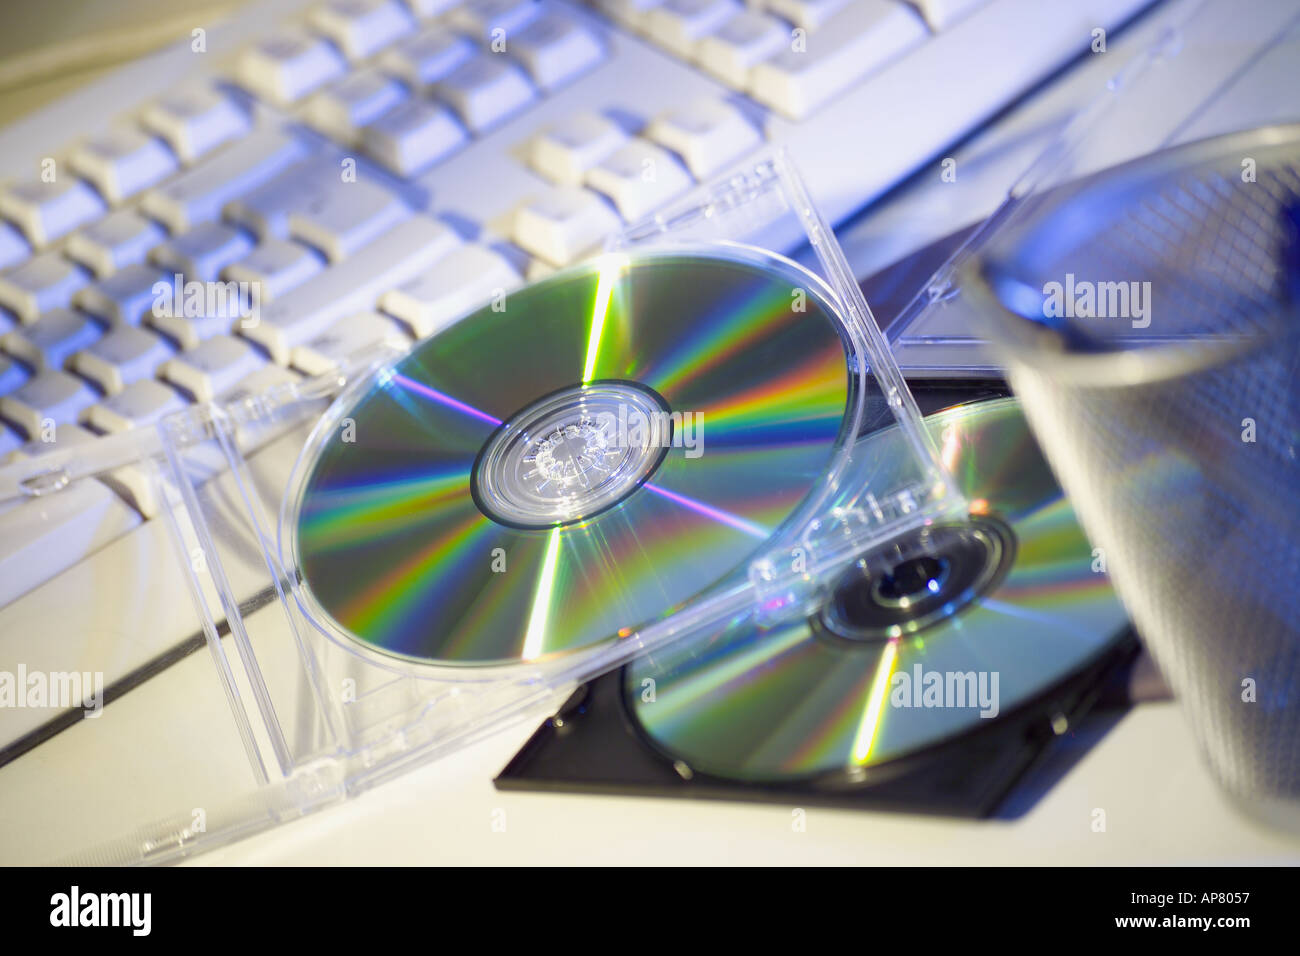 Keyboard and CD s - Stock Image